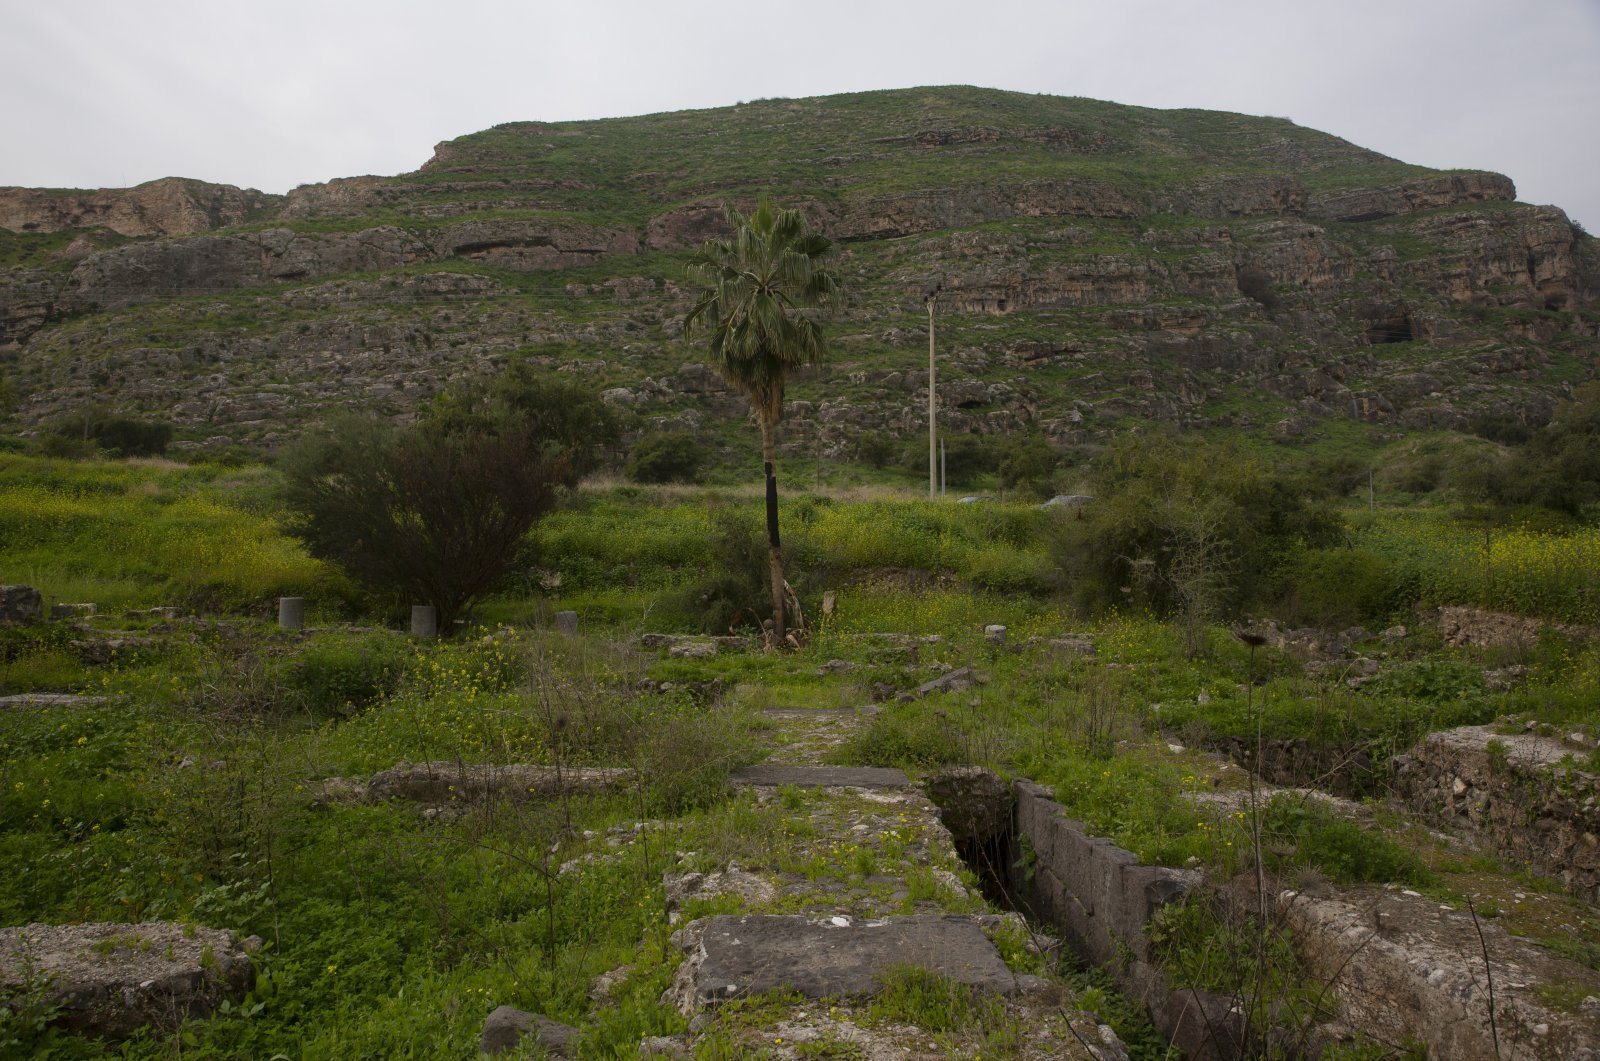 At the foot of Mount Bernice, stones from the Al-Juma (Friday) Mosque are visible through overgrown plants, in Tiberias, northern Israel, Jan. 27, 2021. Archaeologists said recent excavations in the ancient city of Tiberias have revealed the remnants of one of the earliest mosques in the Islamic world. The foundations of the Muslim house of worship date to the late seventh century. (AP Photo)